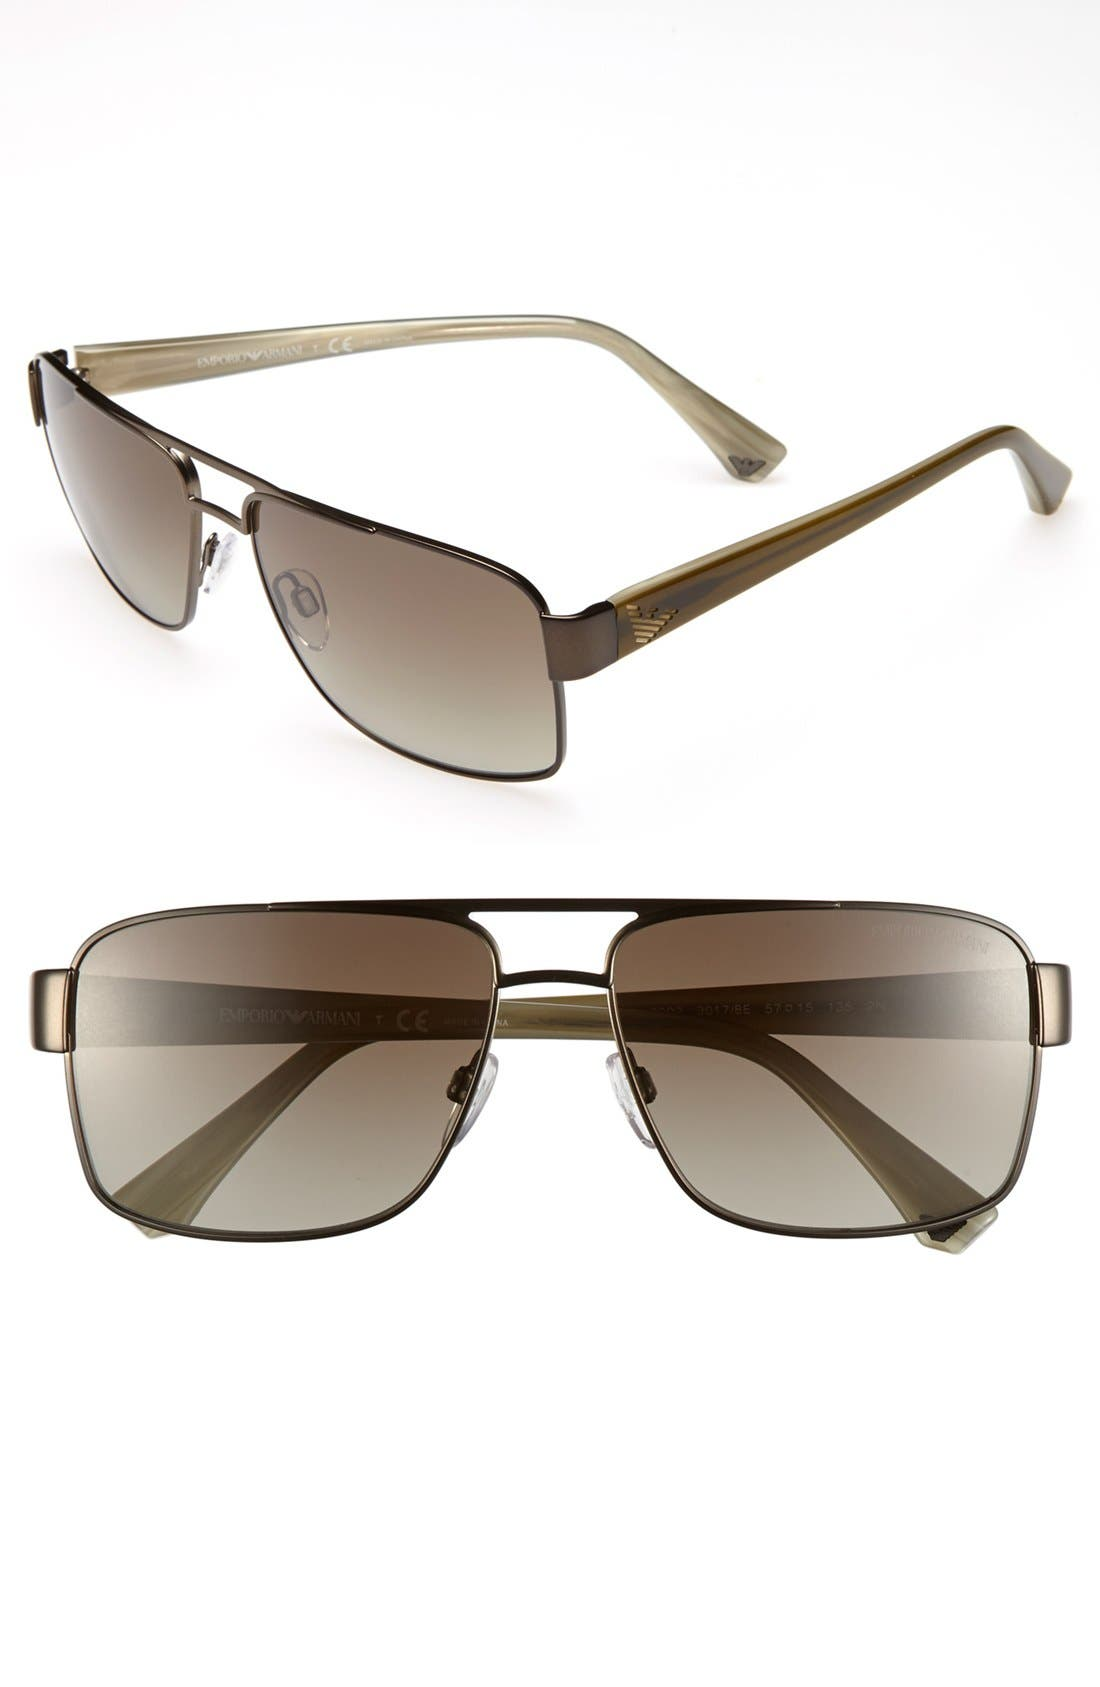 Main Image - Emporio Armani 57mm Sunglasses